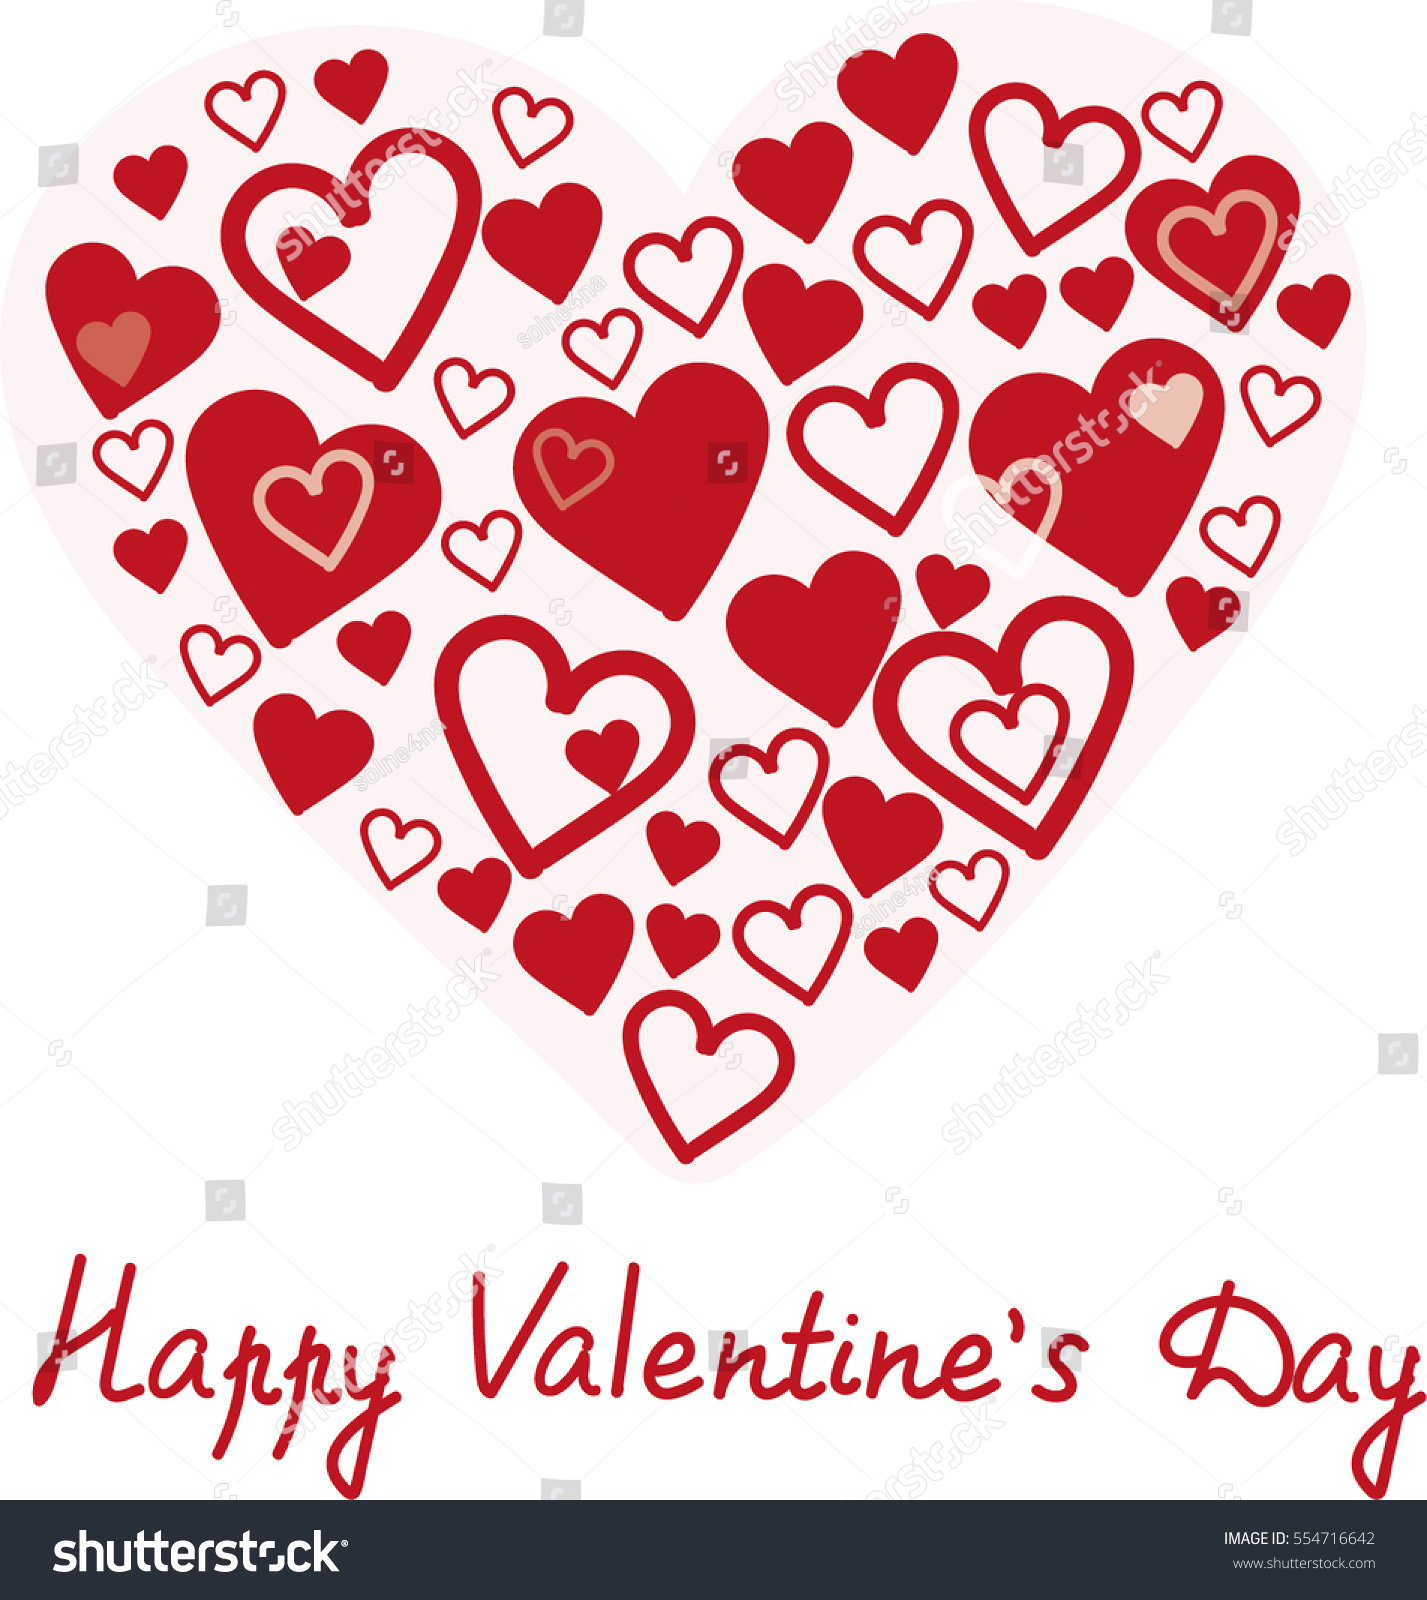 Happy Valentines Day Greetings Card Red Stock Photo Photo Vector